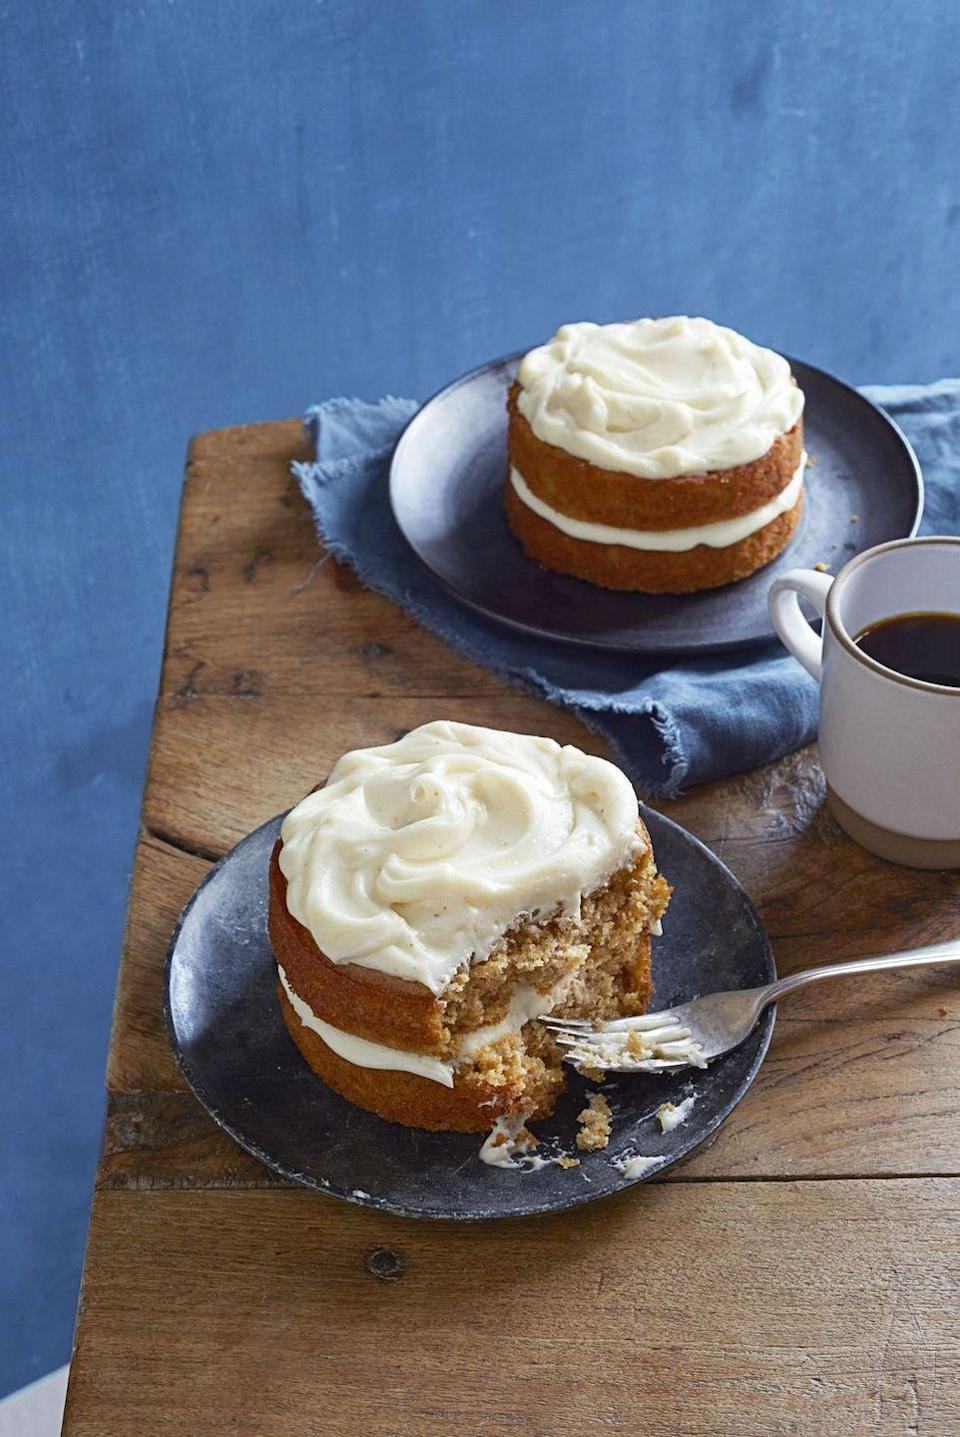 "<p>This sweet spice cake recipe is filled with a fall root veg (think of it like carrot cake) and topped with irresistible brown butter frosting.</p><p><em><a href=""https://www.goodhousekeeping.com/food-recipes/a15941/spiced-parsnip-cake-recipe-ghk1014/"" rel=""nofollow noopener"" target=""_blank"" data-ylk=""slk:Get the recipe for Spiced Parsnip Cake »"" class=""link rapid-noclick-resp"">Get the recipe for Spiced Parsnip Cake »</a></em></p>"